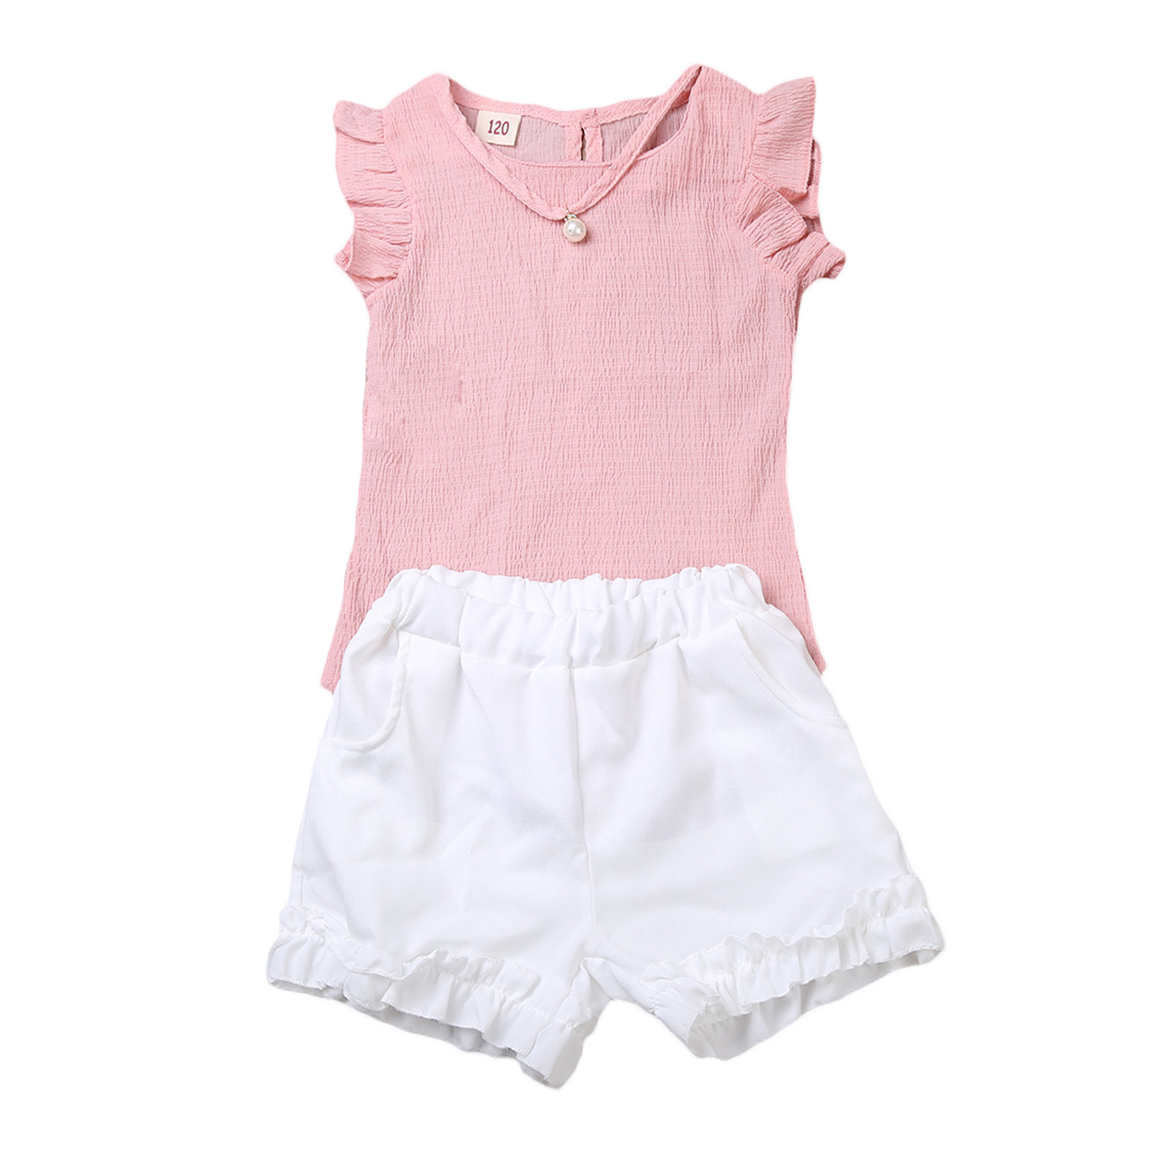 2pcs Children Kids Baby Girls Outfit Sets Chiffon T-shirt Tops Shorts Sleeveless Summer Outfits Suit Cute Girls Clothes Sets